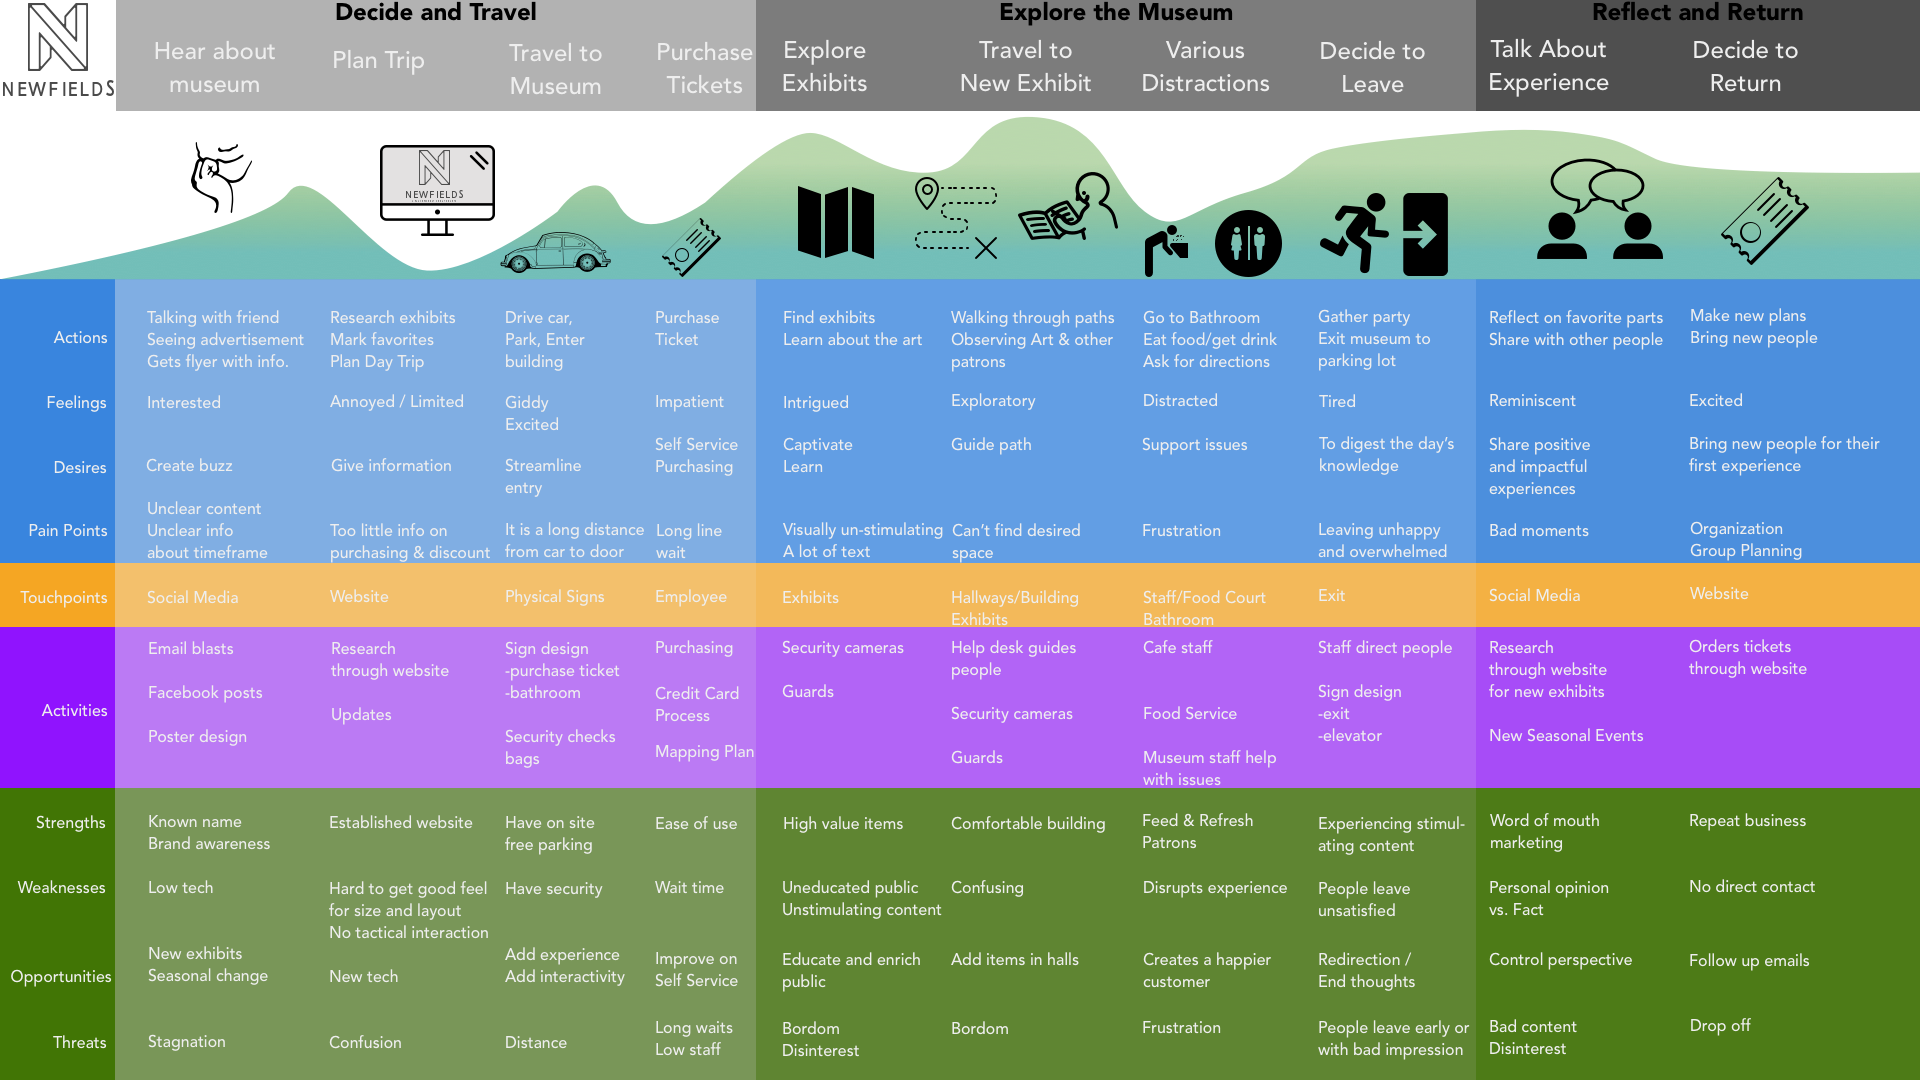 Qualitative Ux Field Guide Turn Observations Into Insights By Collin Pfender Ux Collective